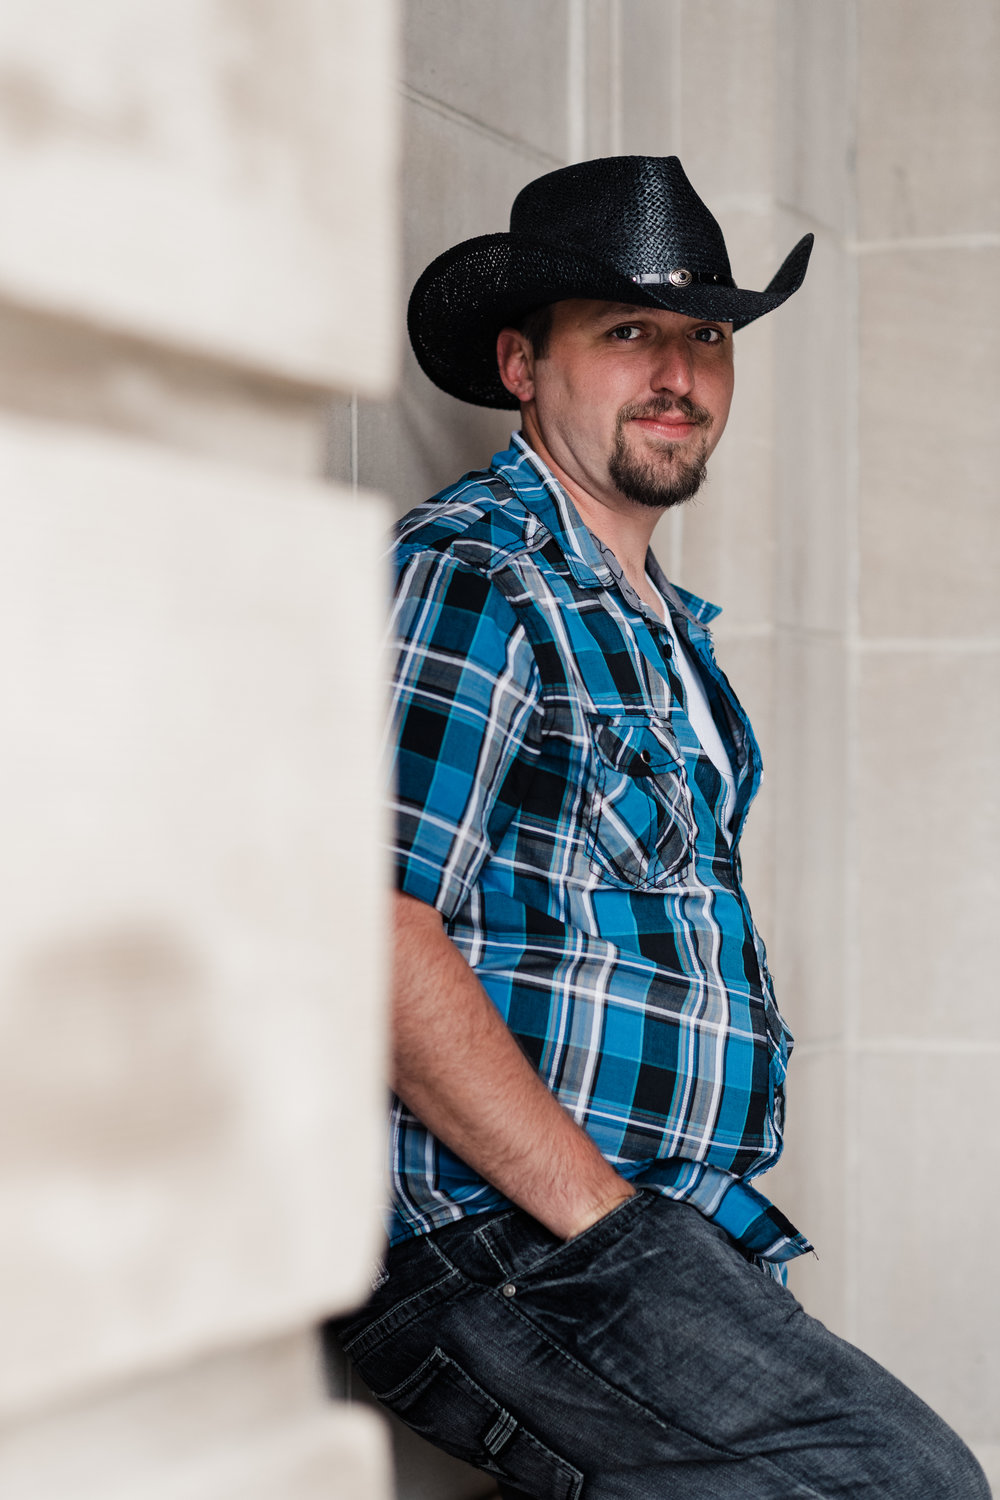 Engagement photo of a groom with his back to the wall, looking at the camera, and wearing cowboy hats and plaid shirts at the Chazen Museum of Art in Madison, WI.